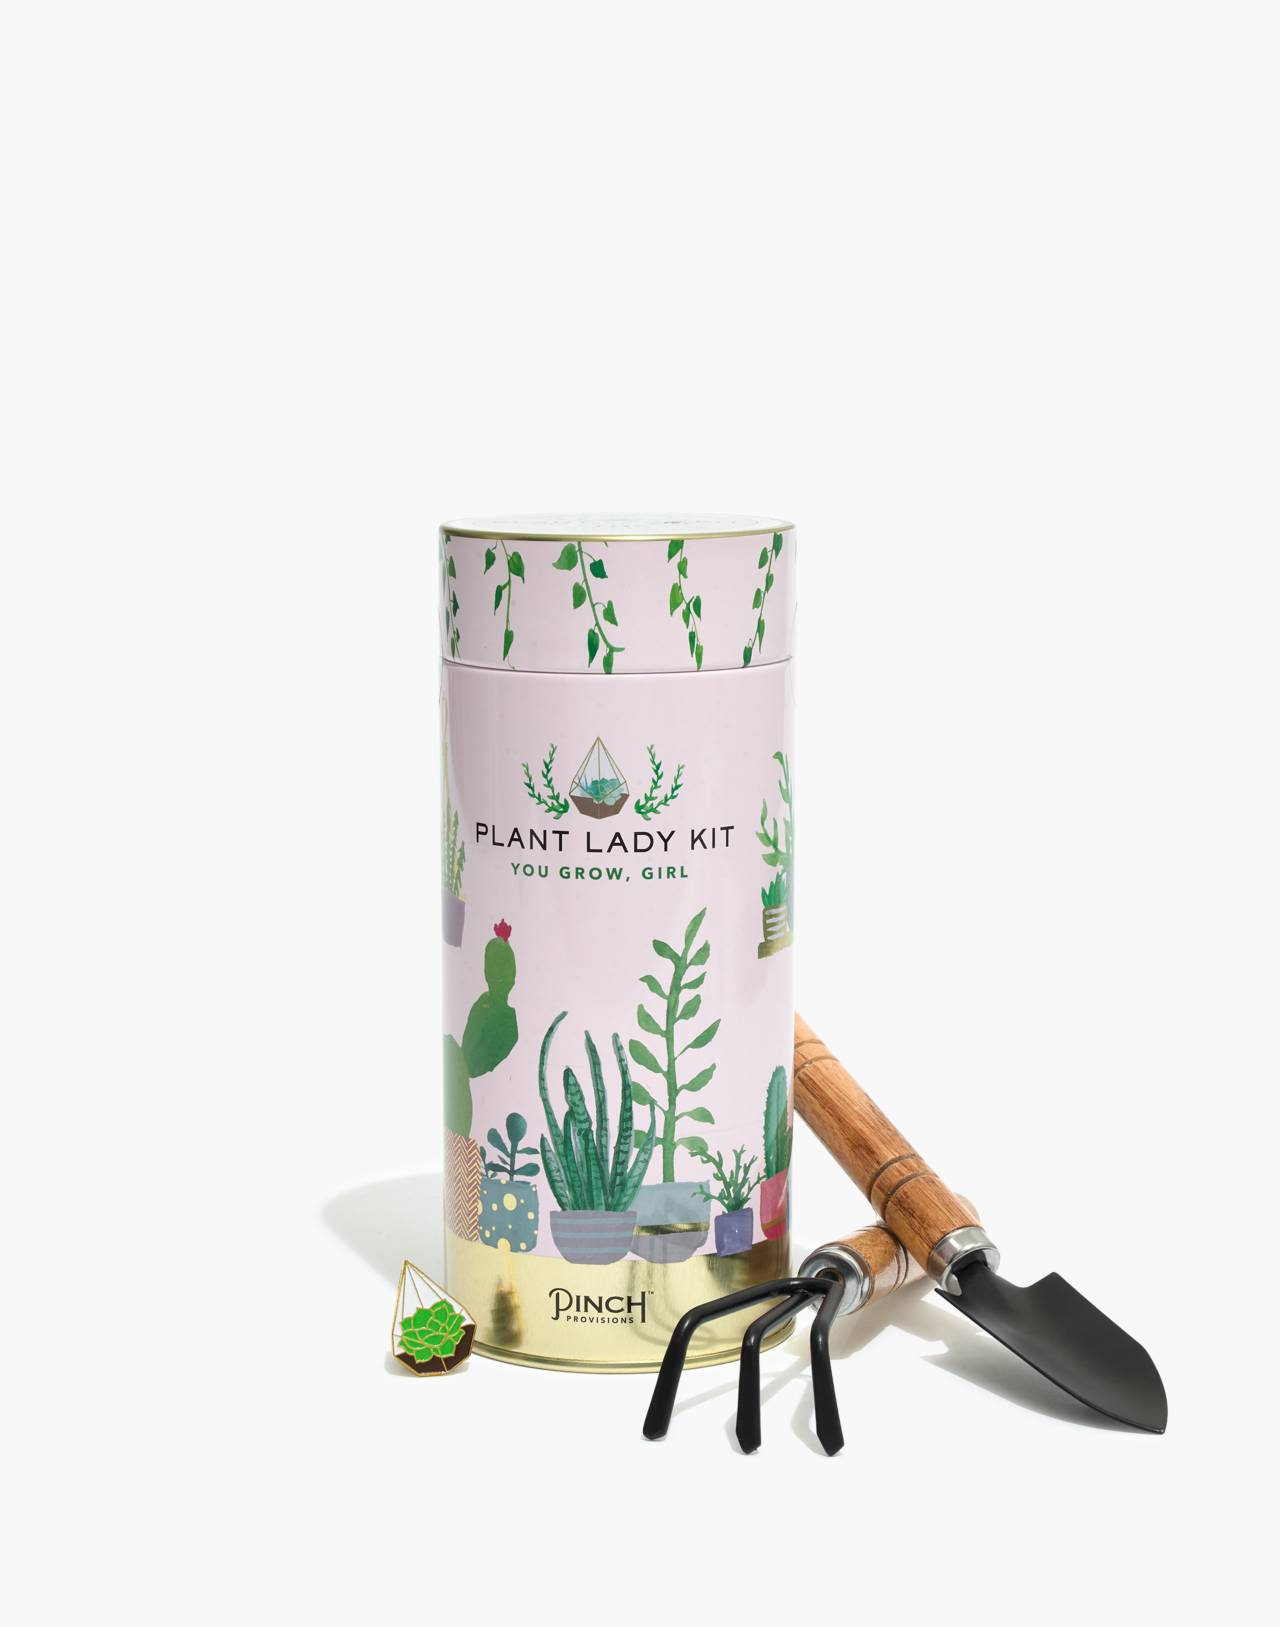 Pinch Provisions® Plant Lady Kit in plant kit image 1